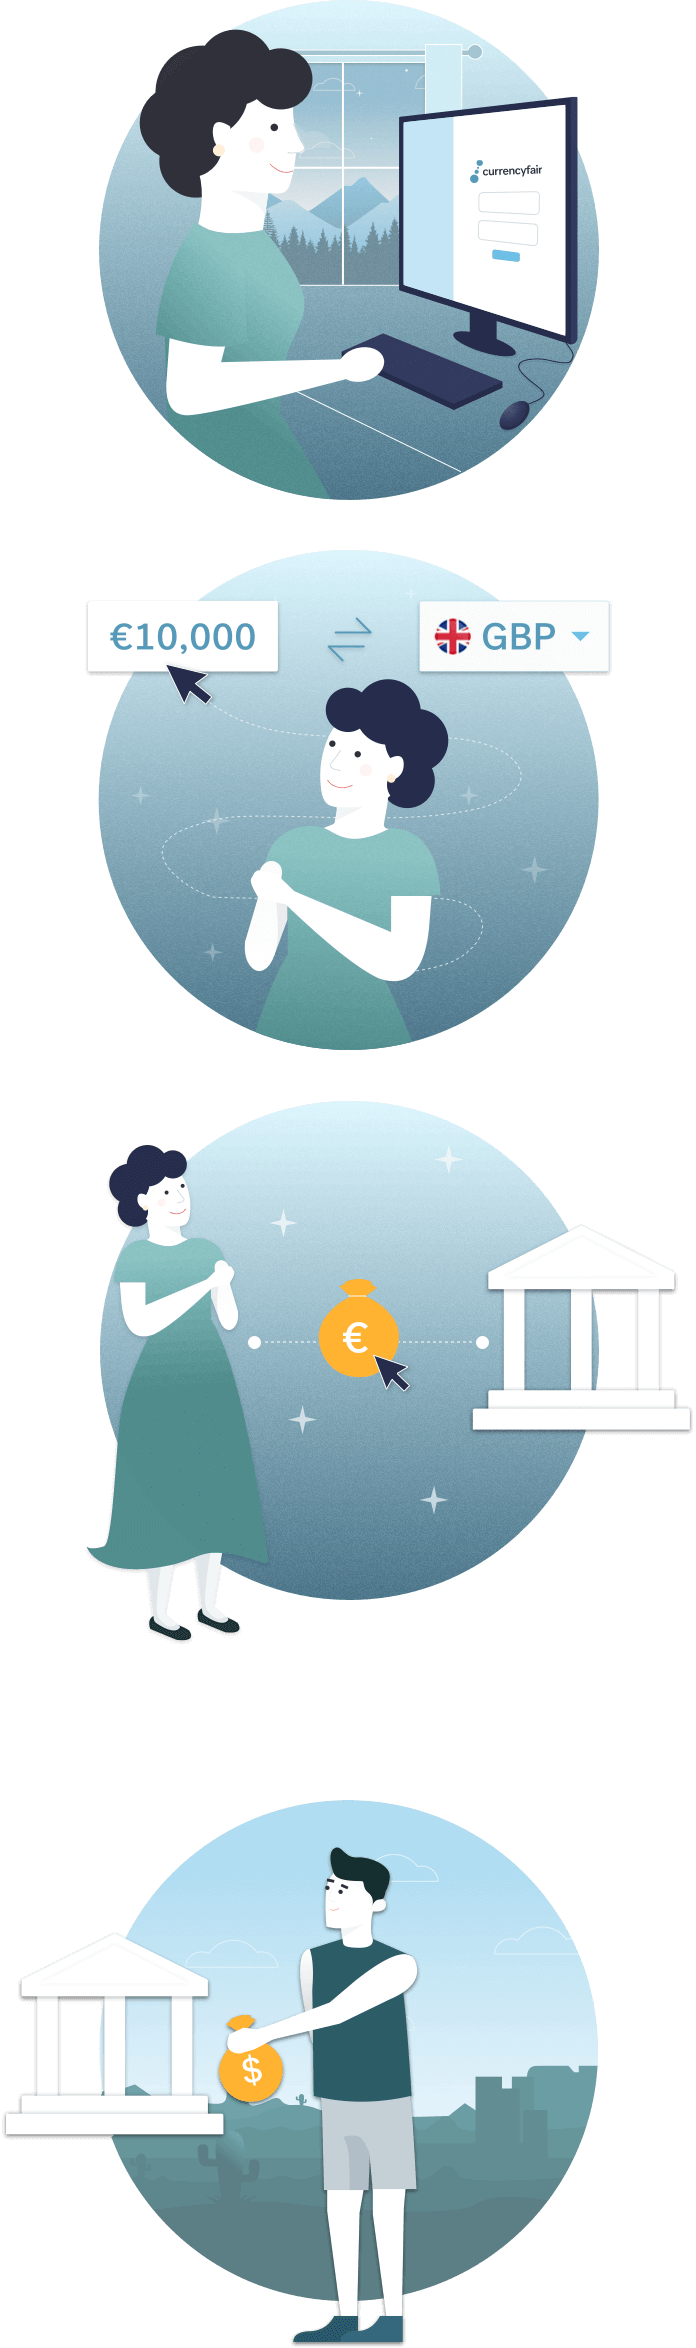 Women creating CurrencyFair account